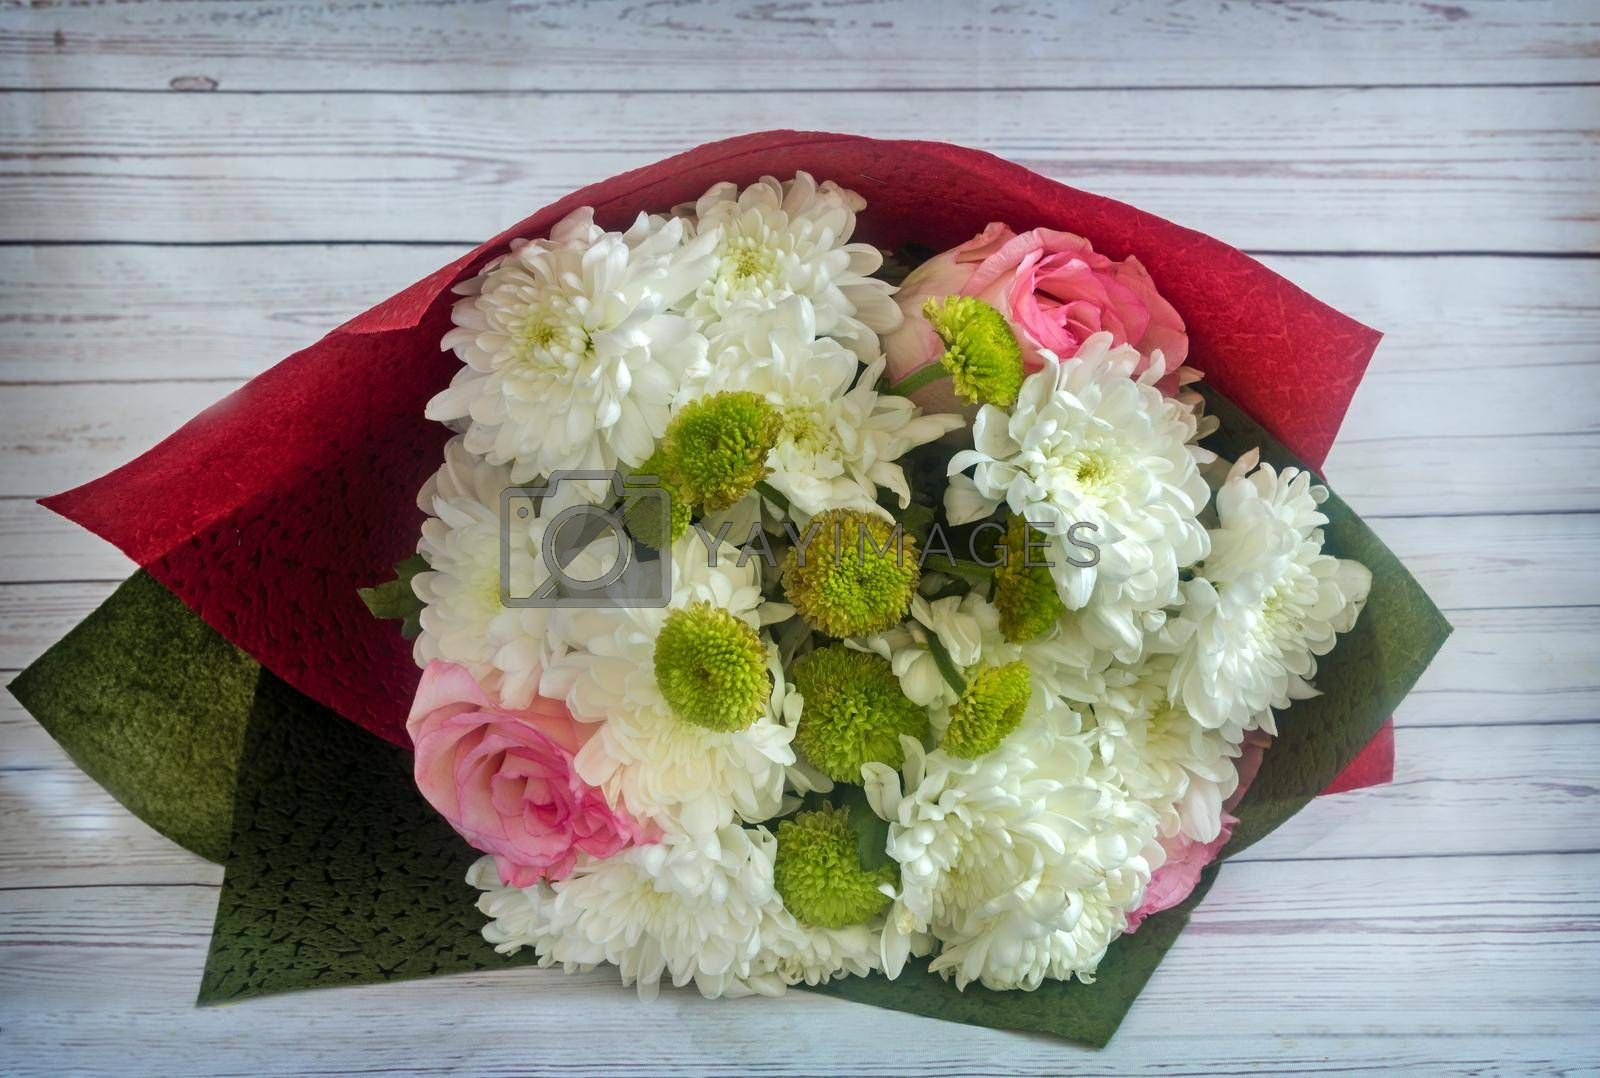 Beautiful bouquet of roses and chrysanthemums in decorative packaging.